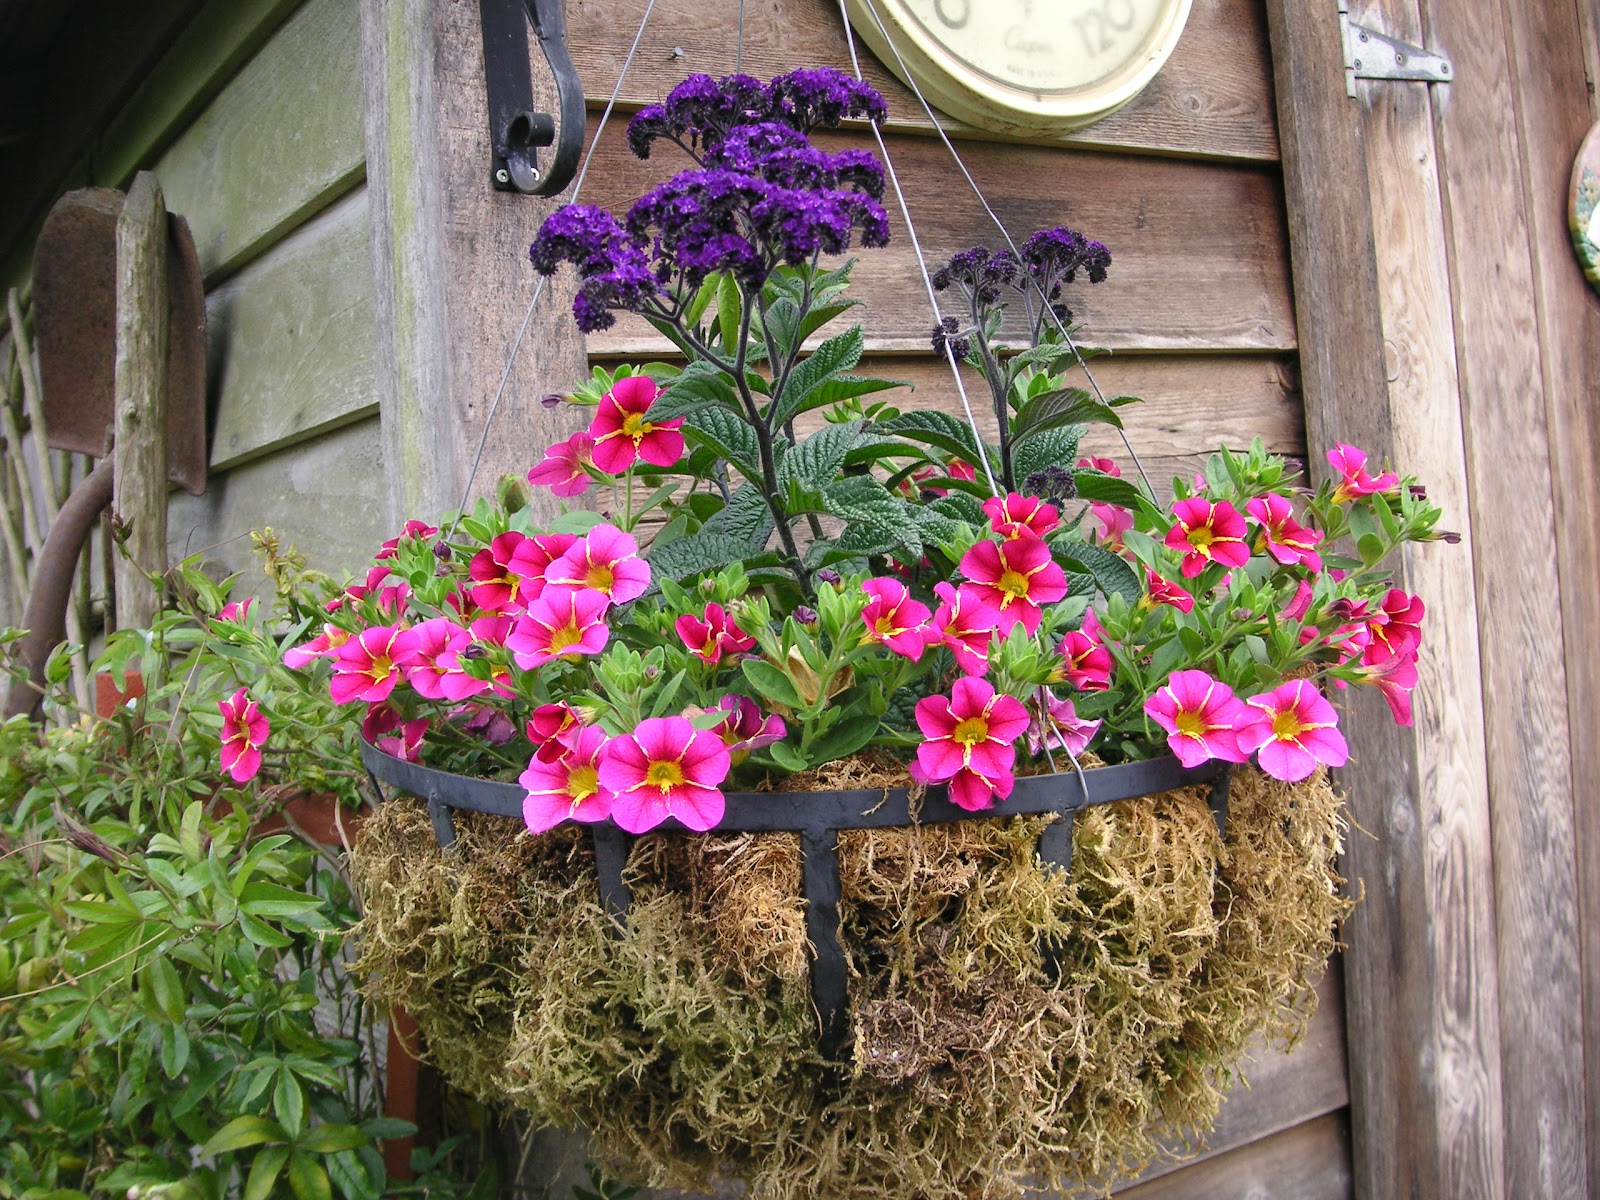 meet cherry star a new winner for hanging baskets that bloomin 39 garden. Black Bedroom Furniture Sets. Home Design Ideas